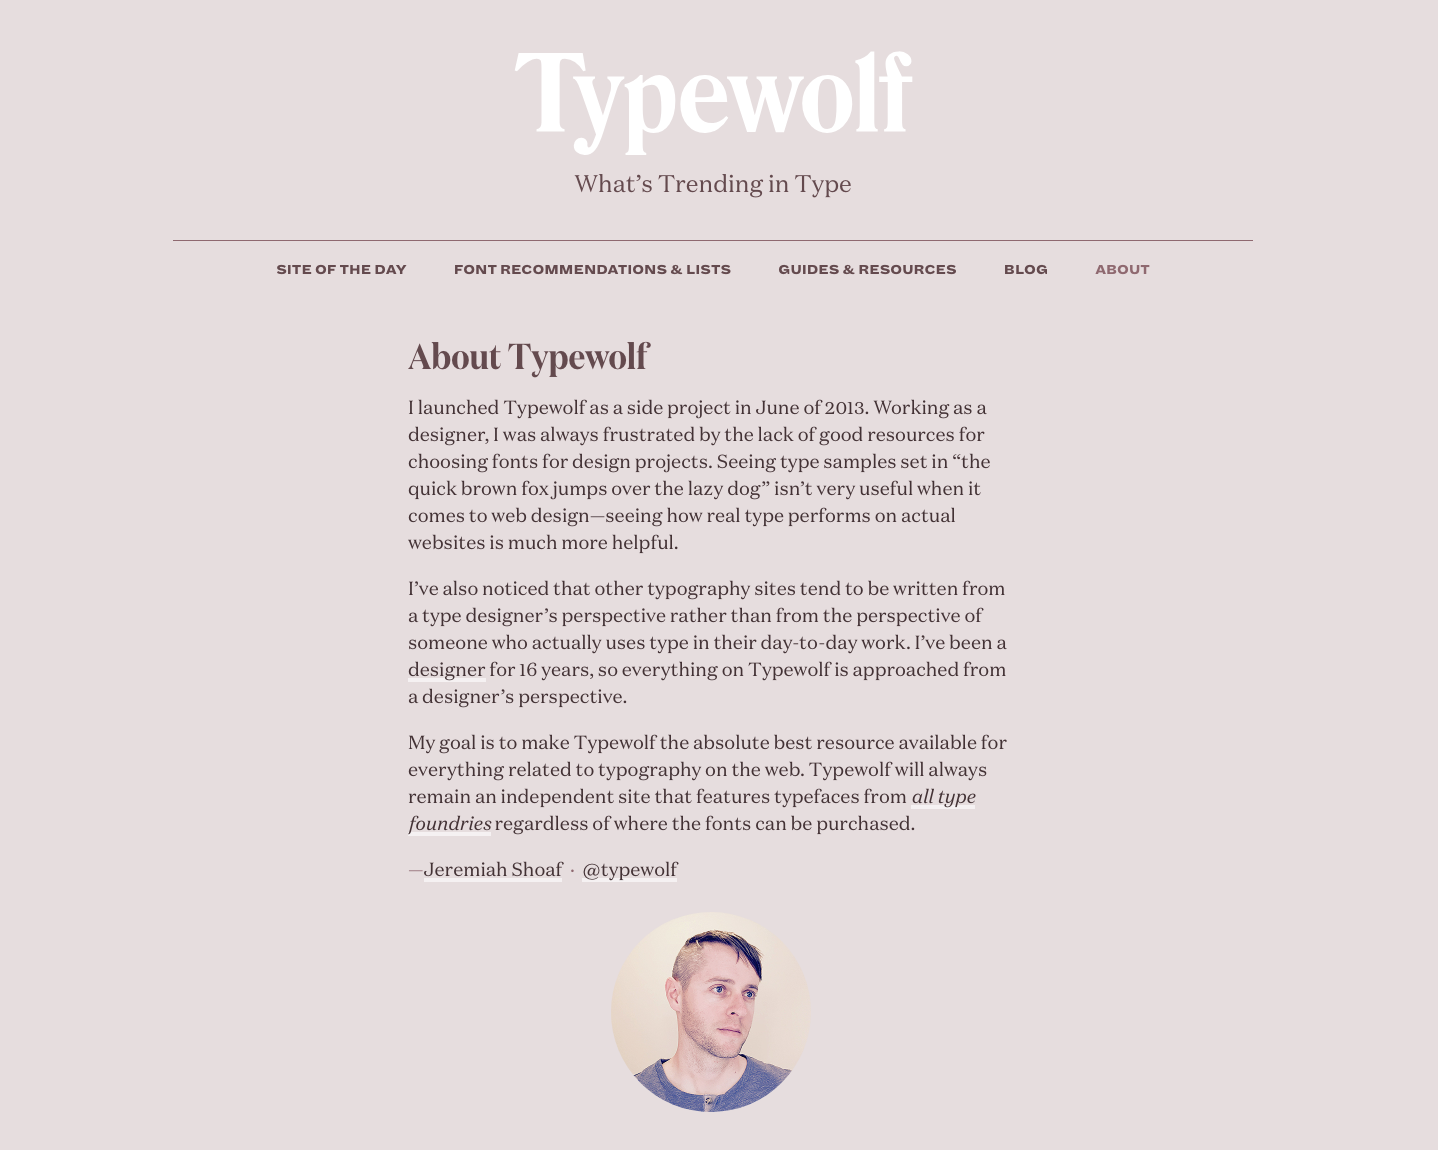 Typewolf uses 75-character lines